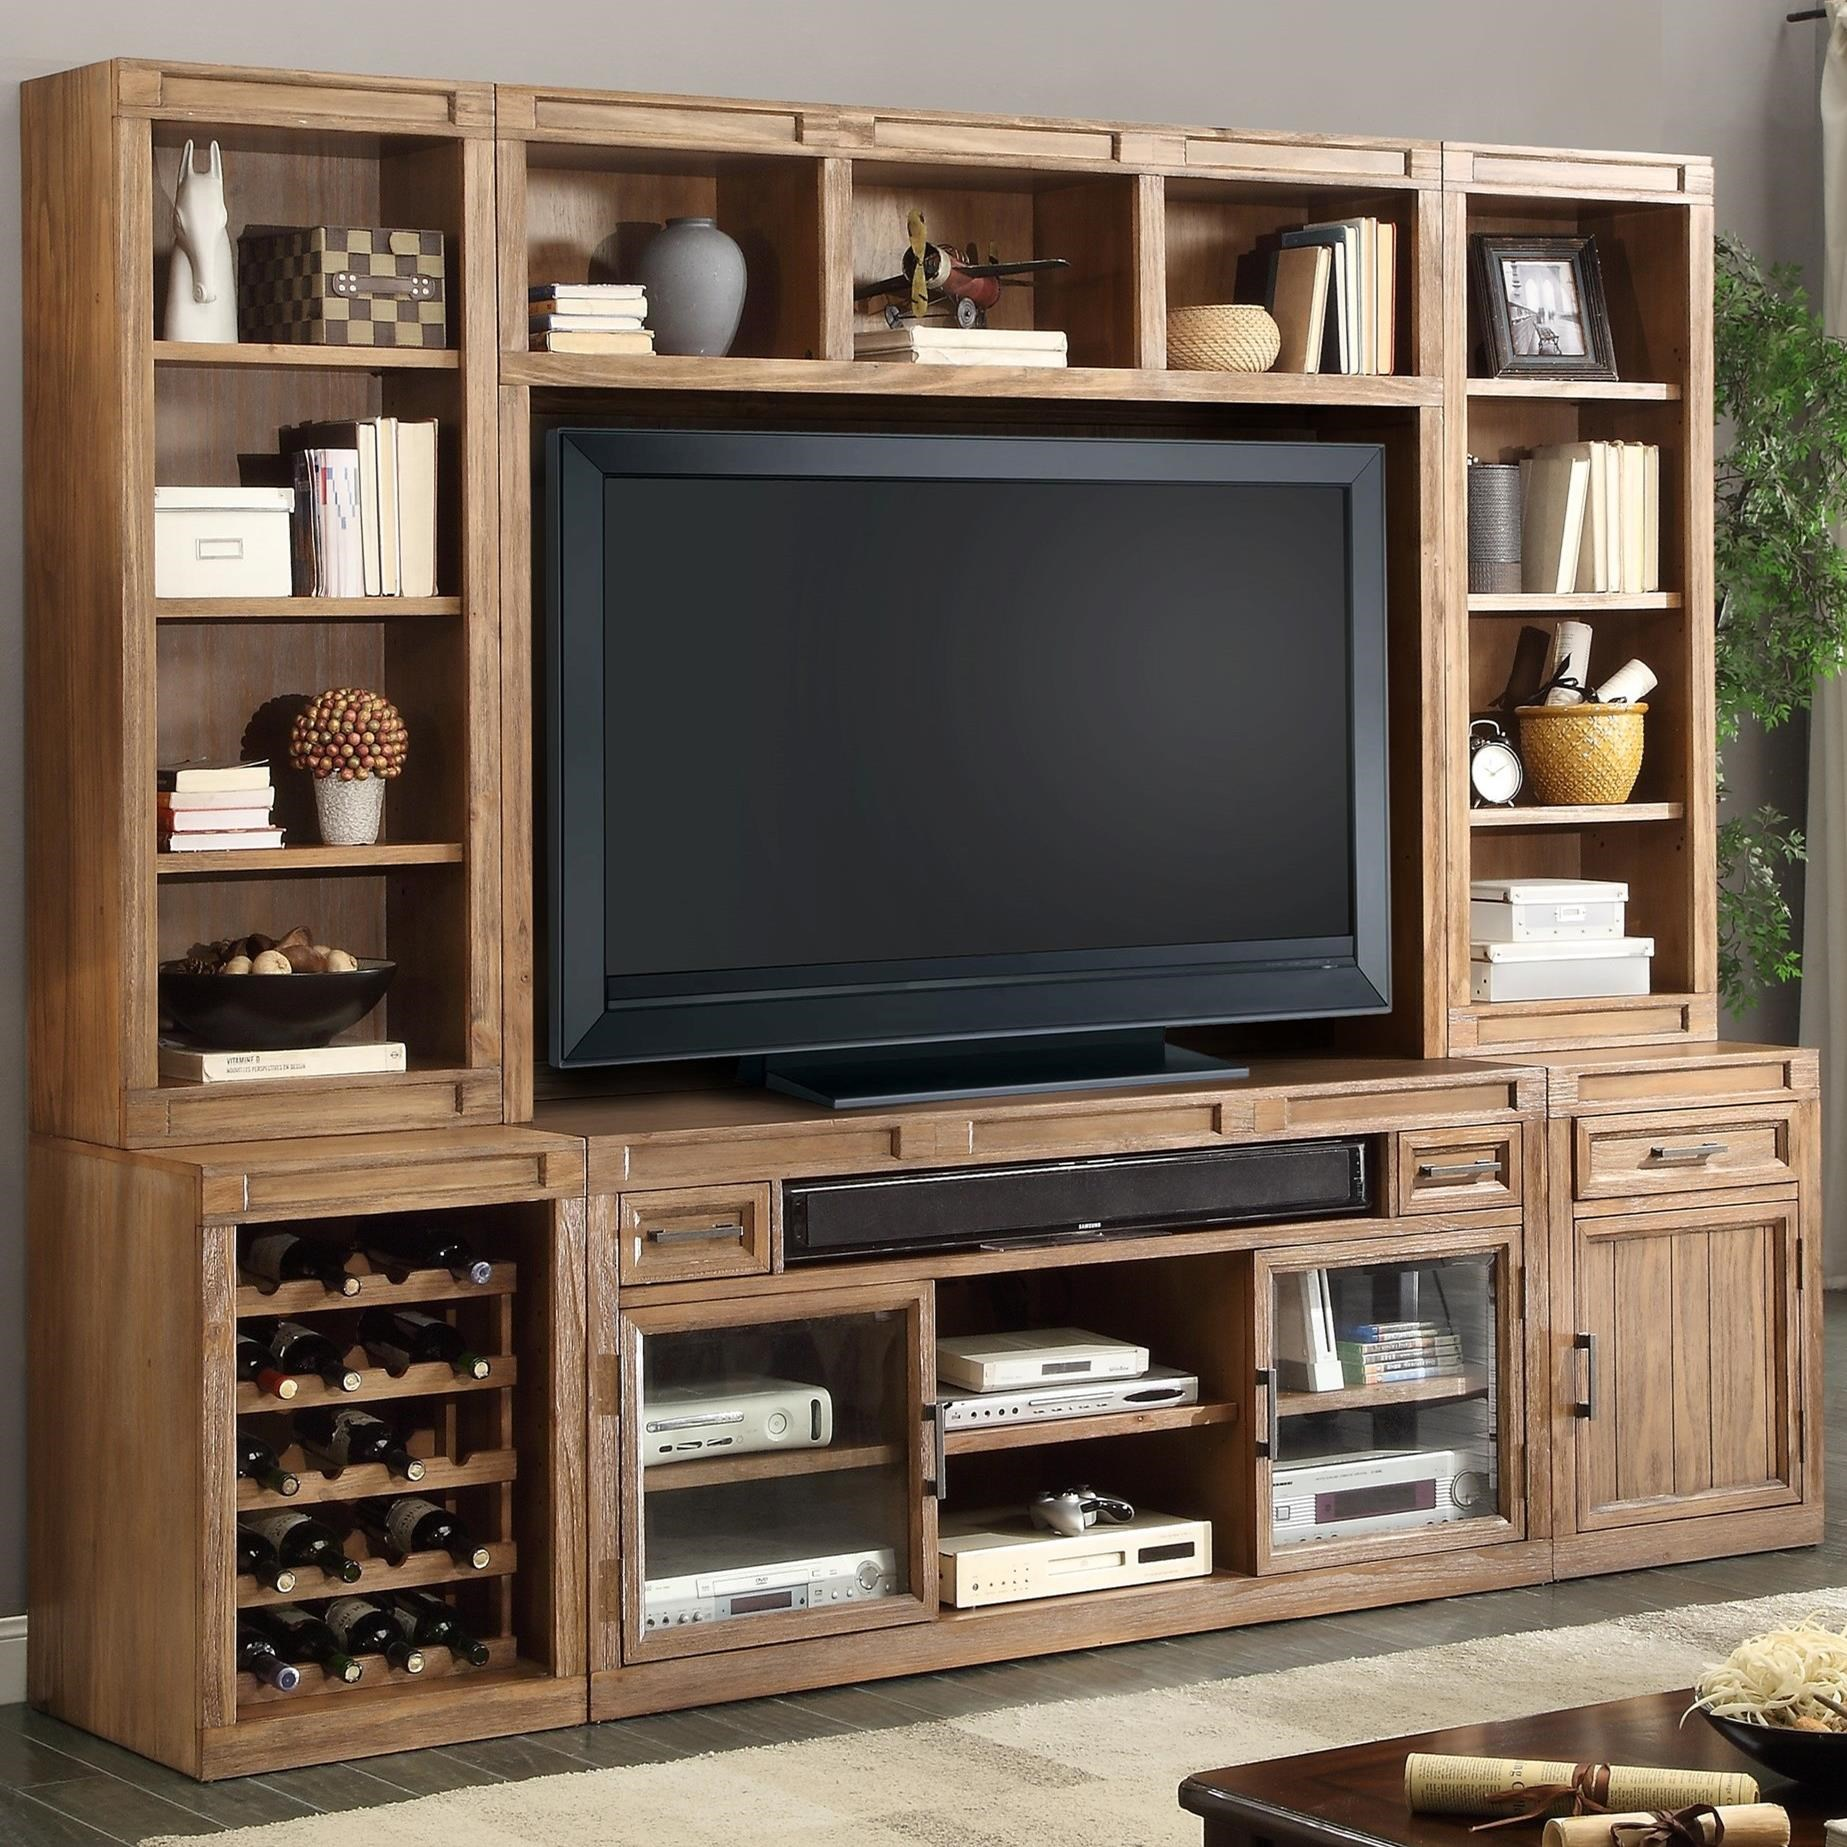 Parker House Hickory Creek 6 Piece TV Console Set - Item Number: HIC-6-TV